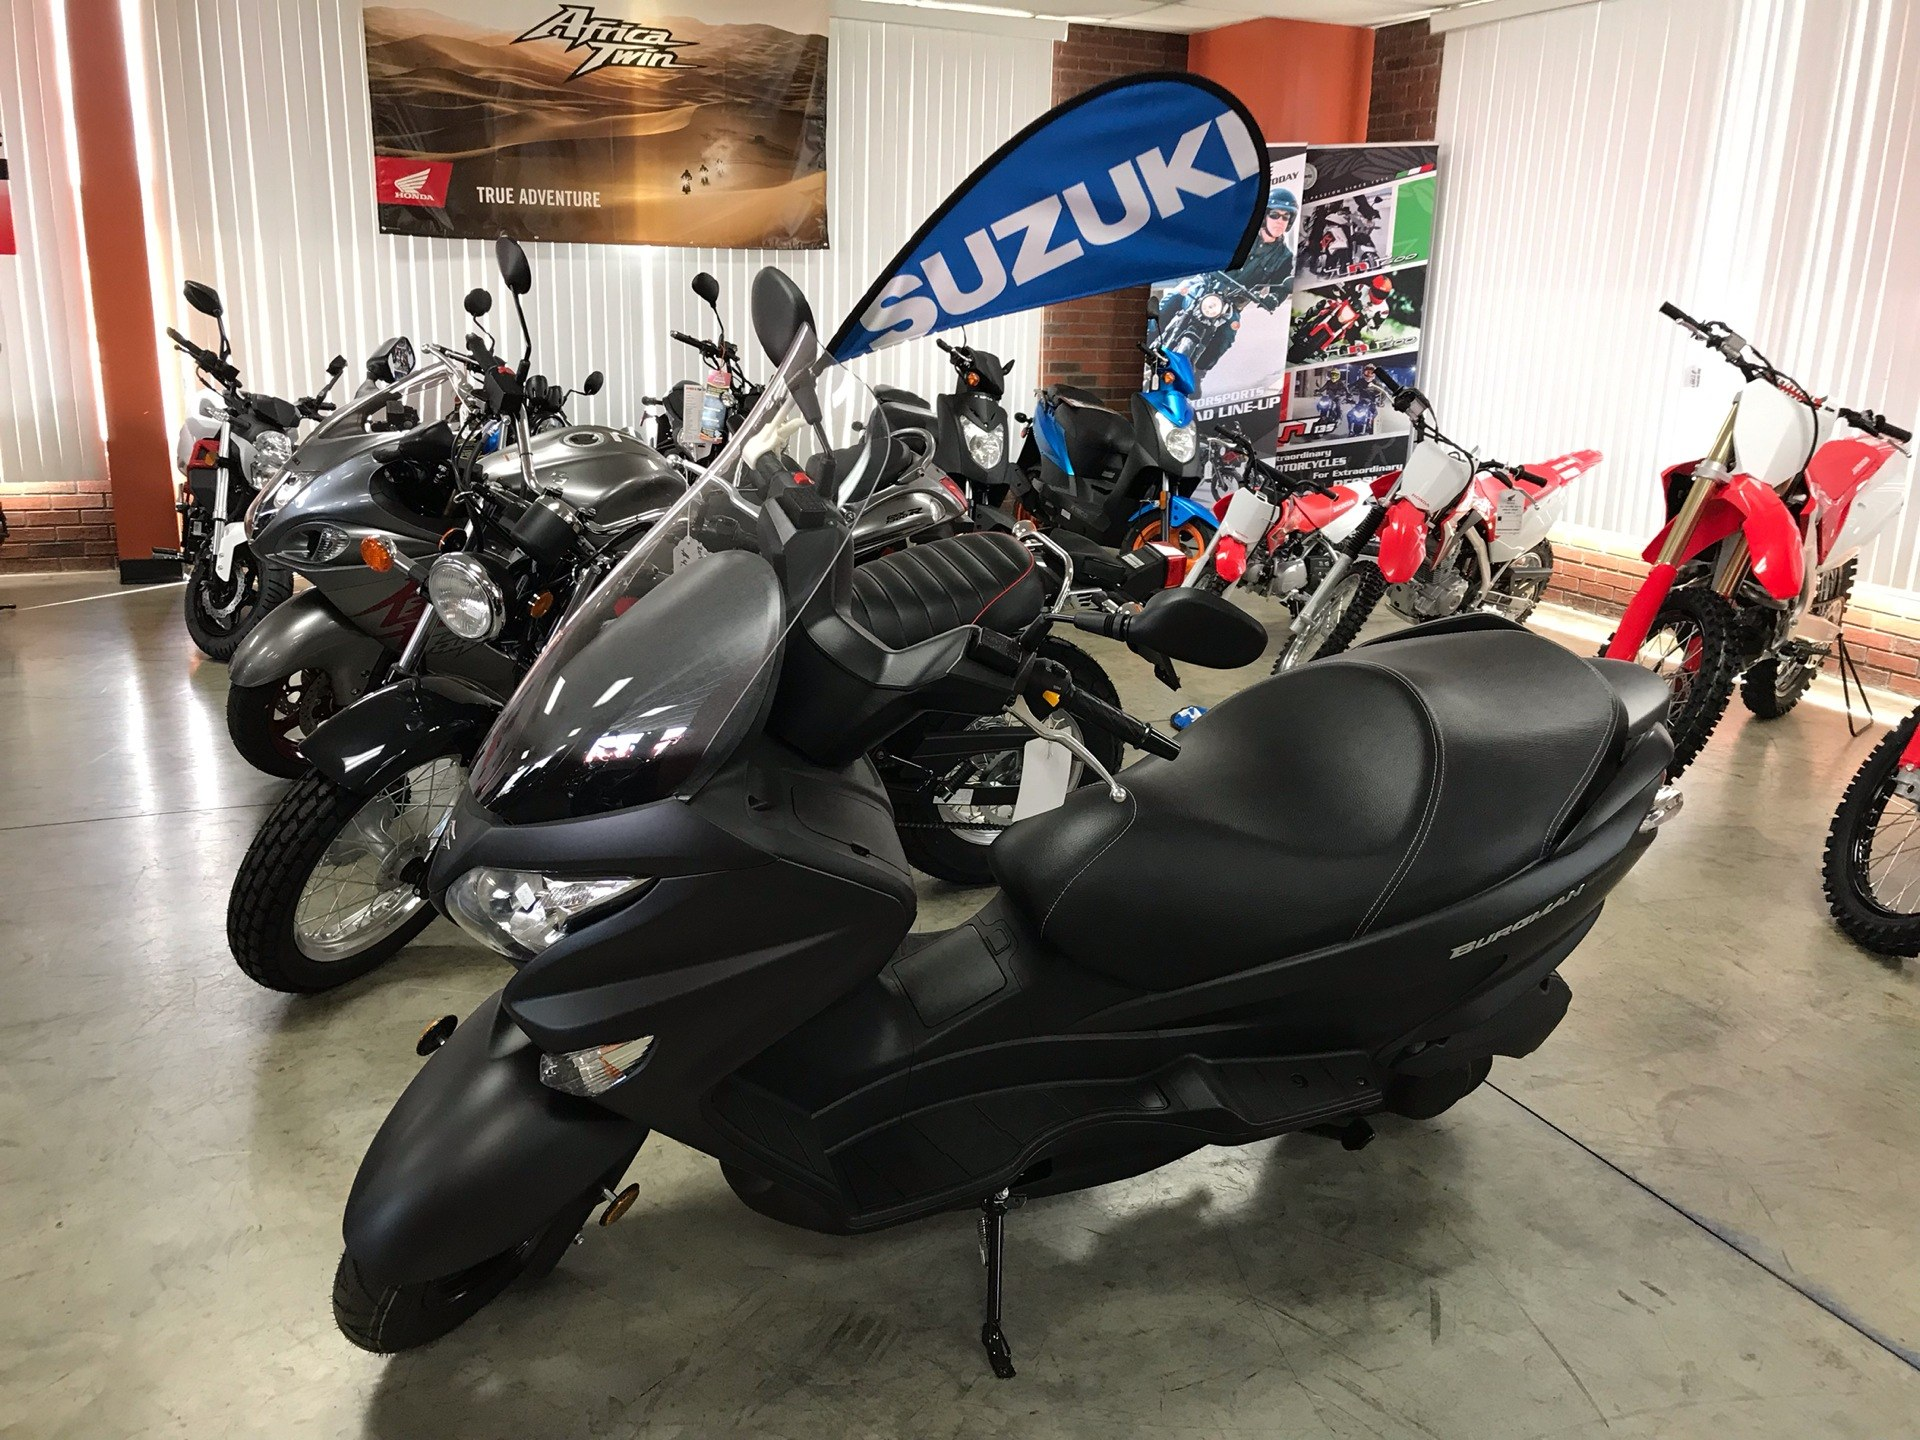 2019 Suzuki Burgman 200 in Sanford, North Carolina - Photo 2